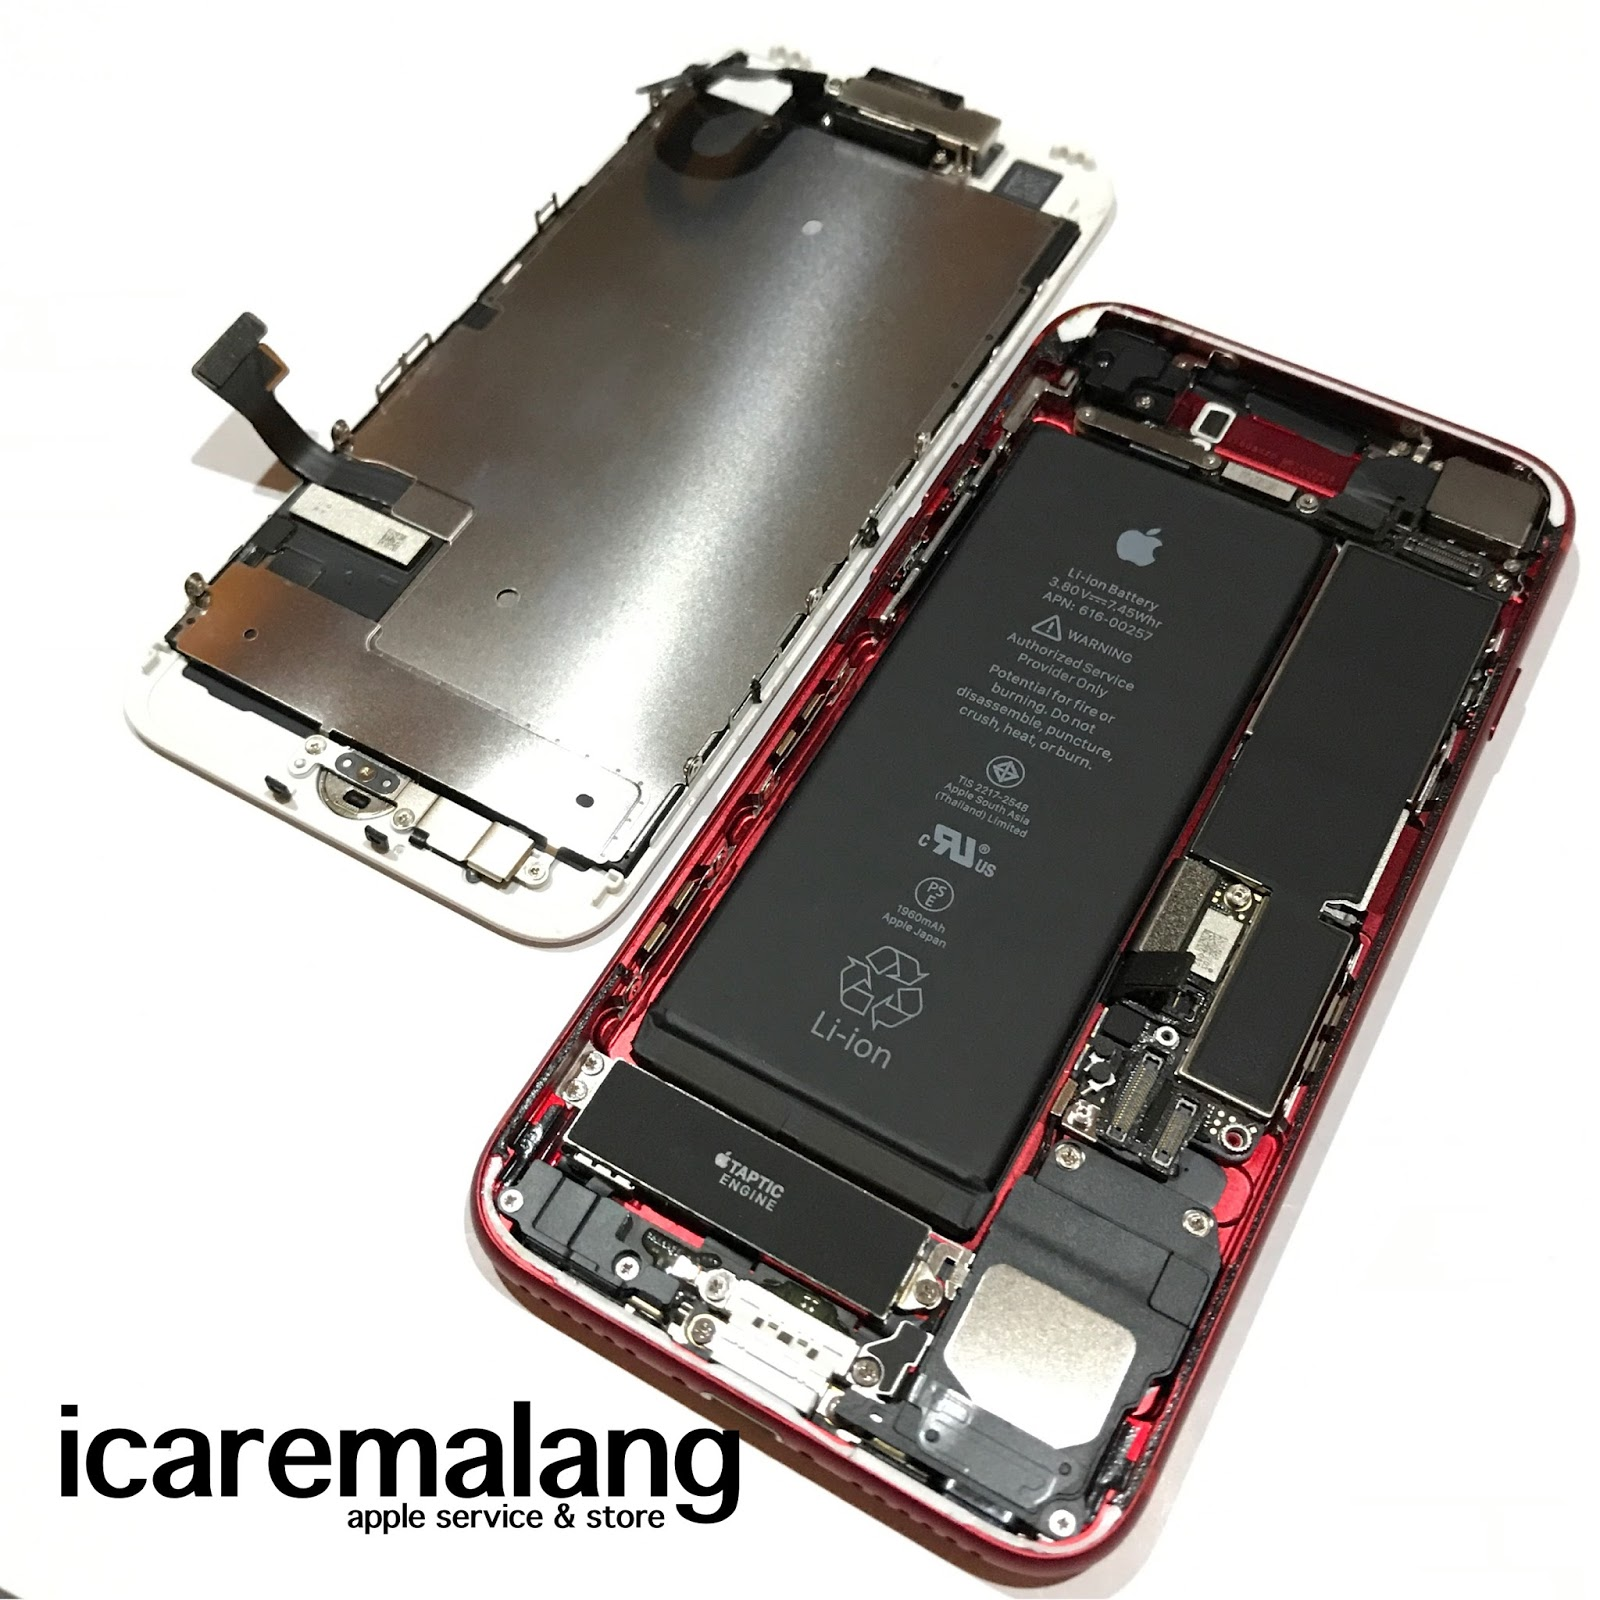 Icaremalang Id Idevice Service Store Service Iphone Malang